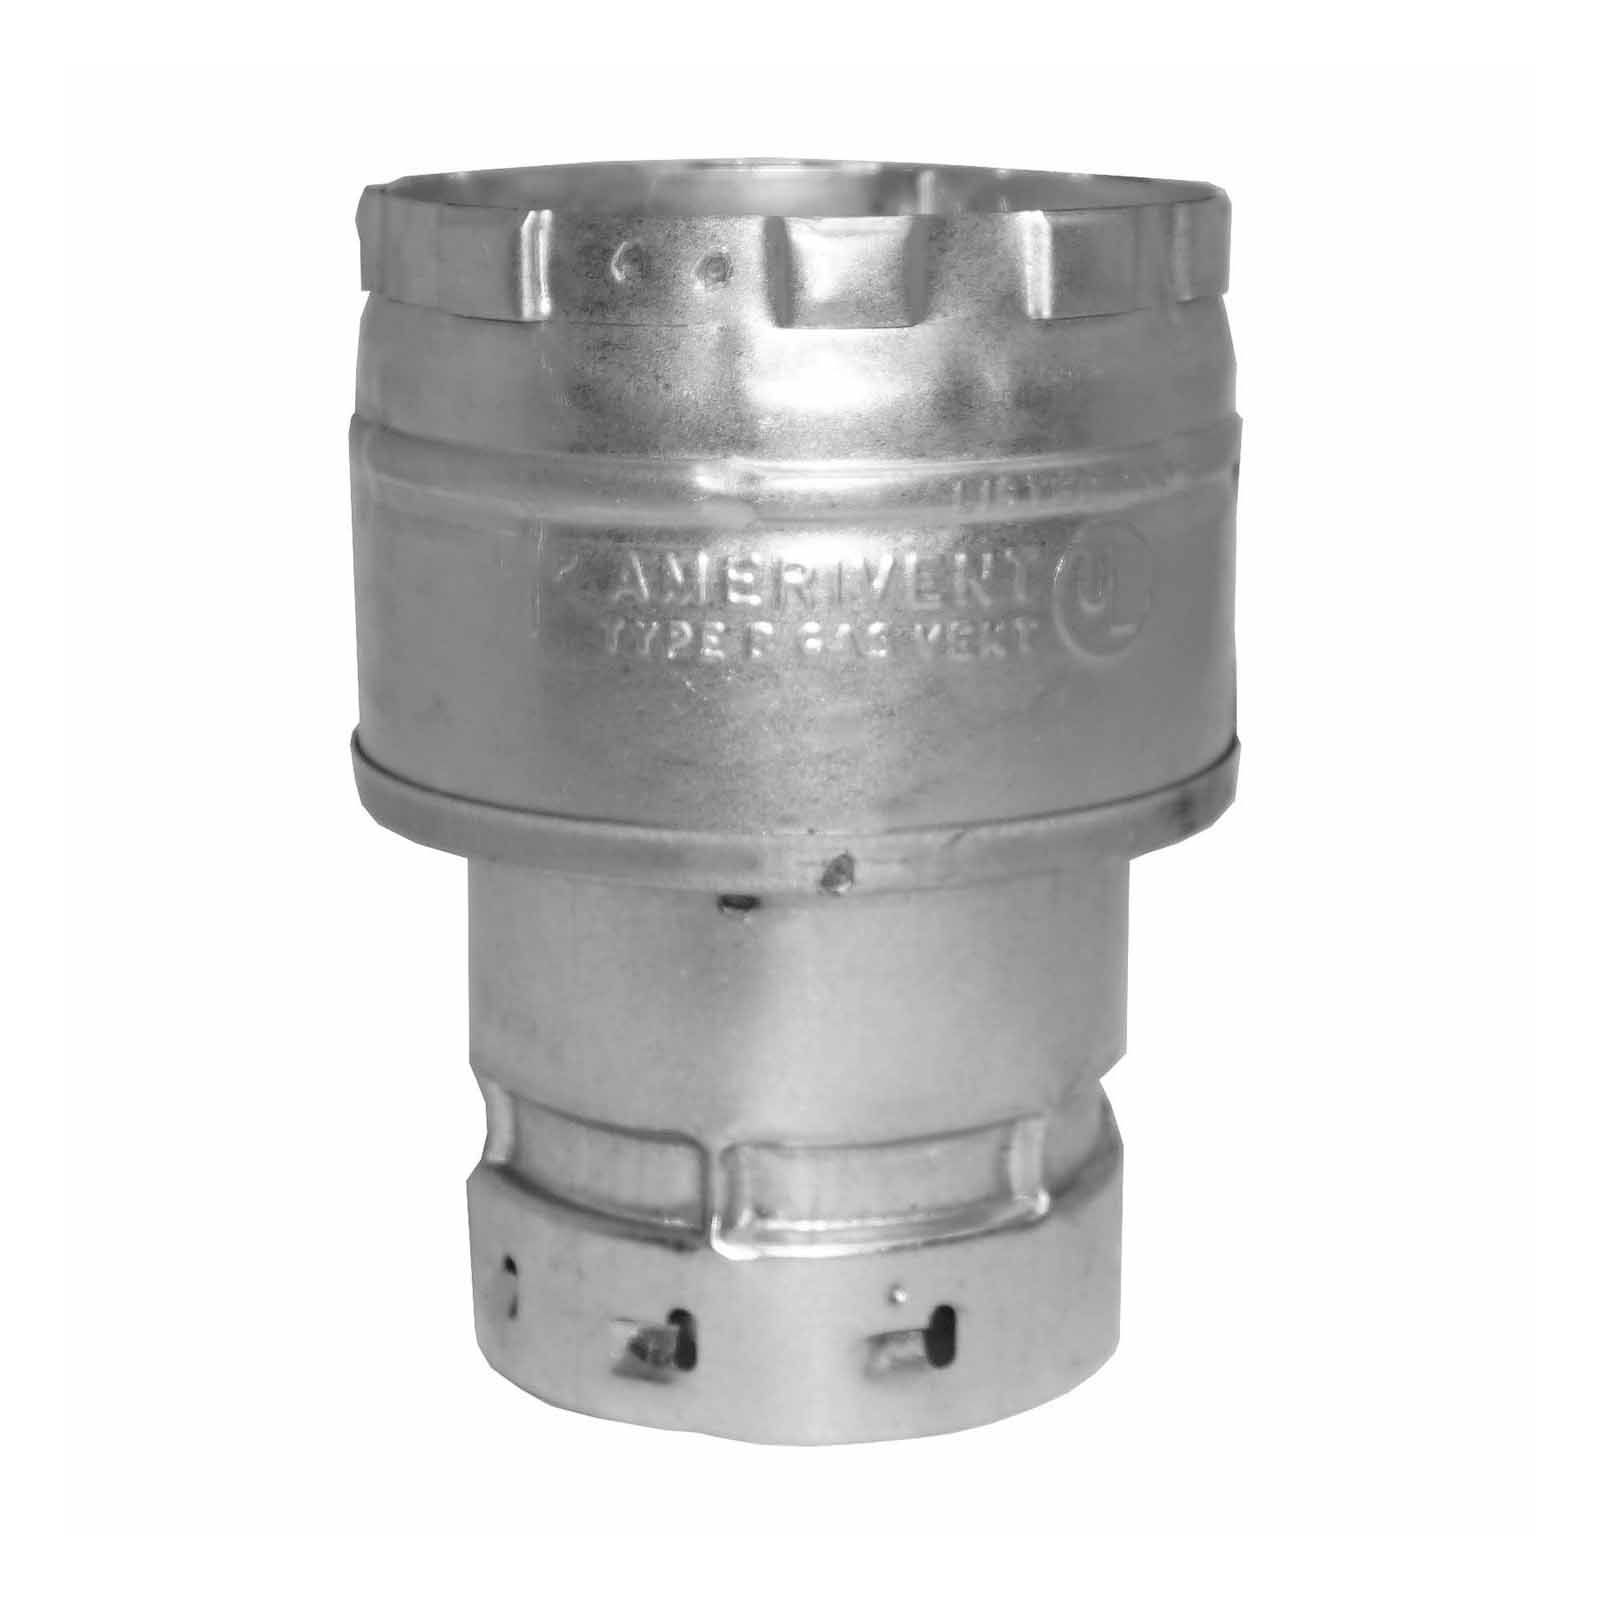 "AmeriVent 4EIX5 - B-Vent Increaser, 4"" To 5"""